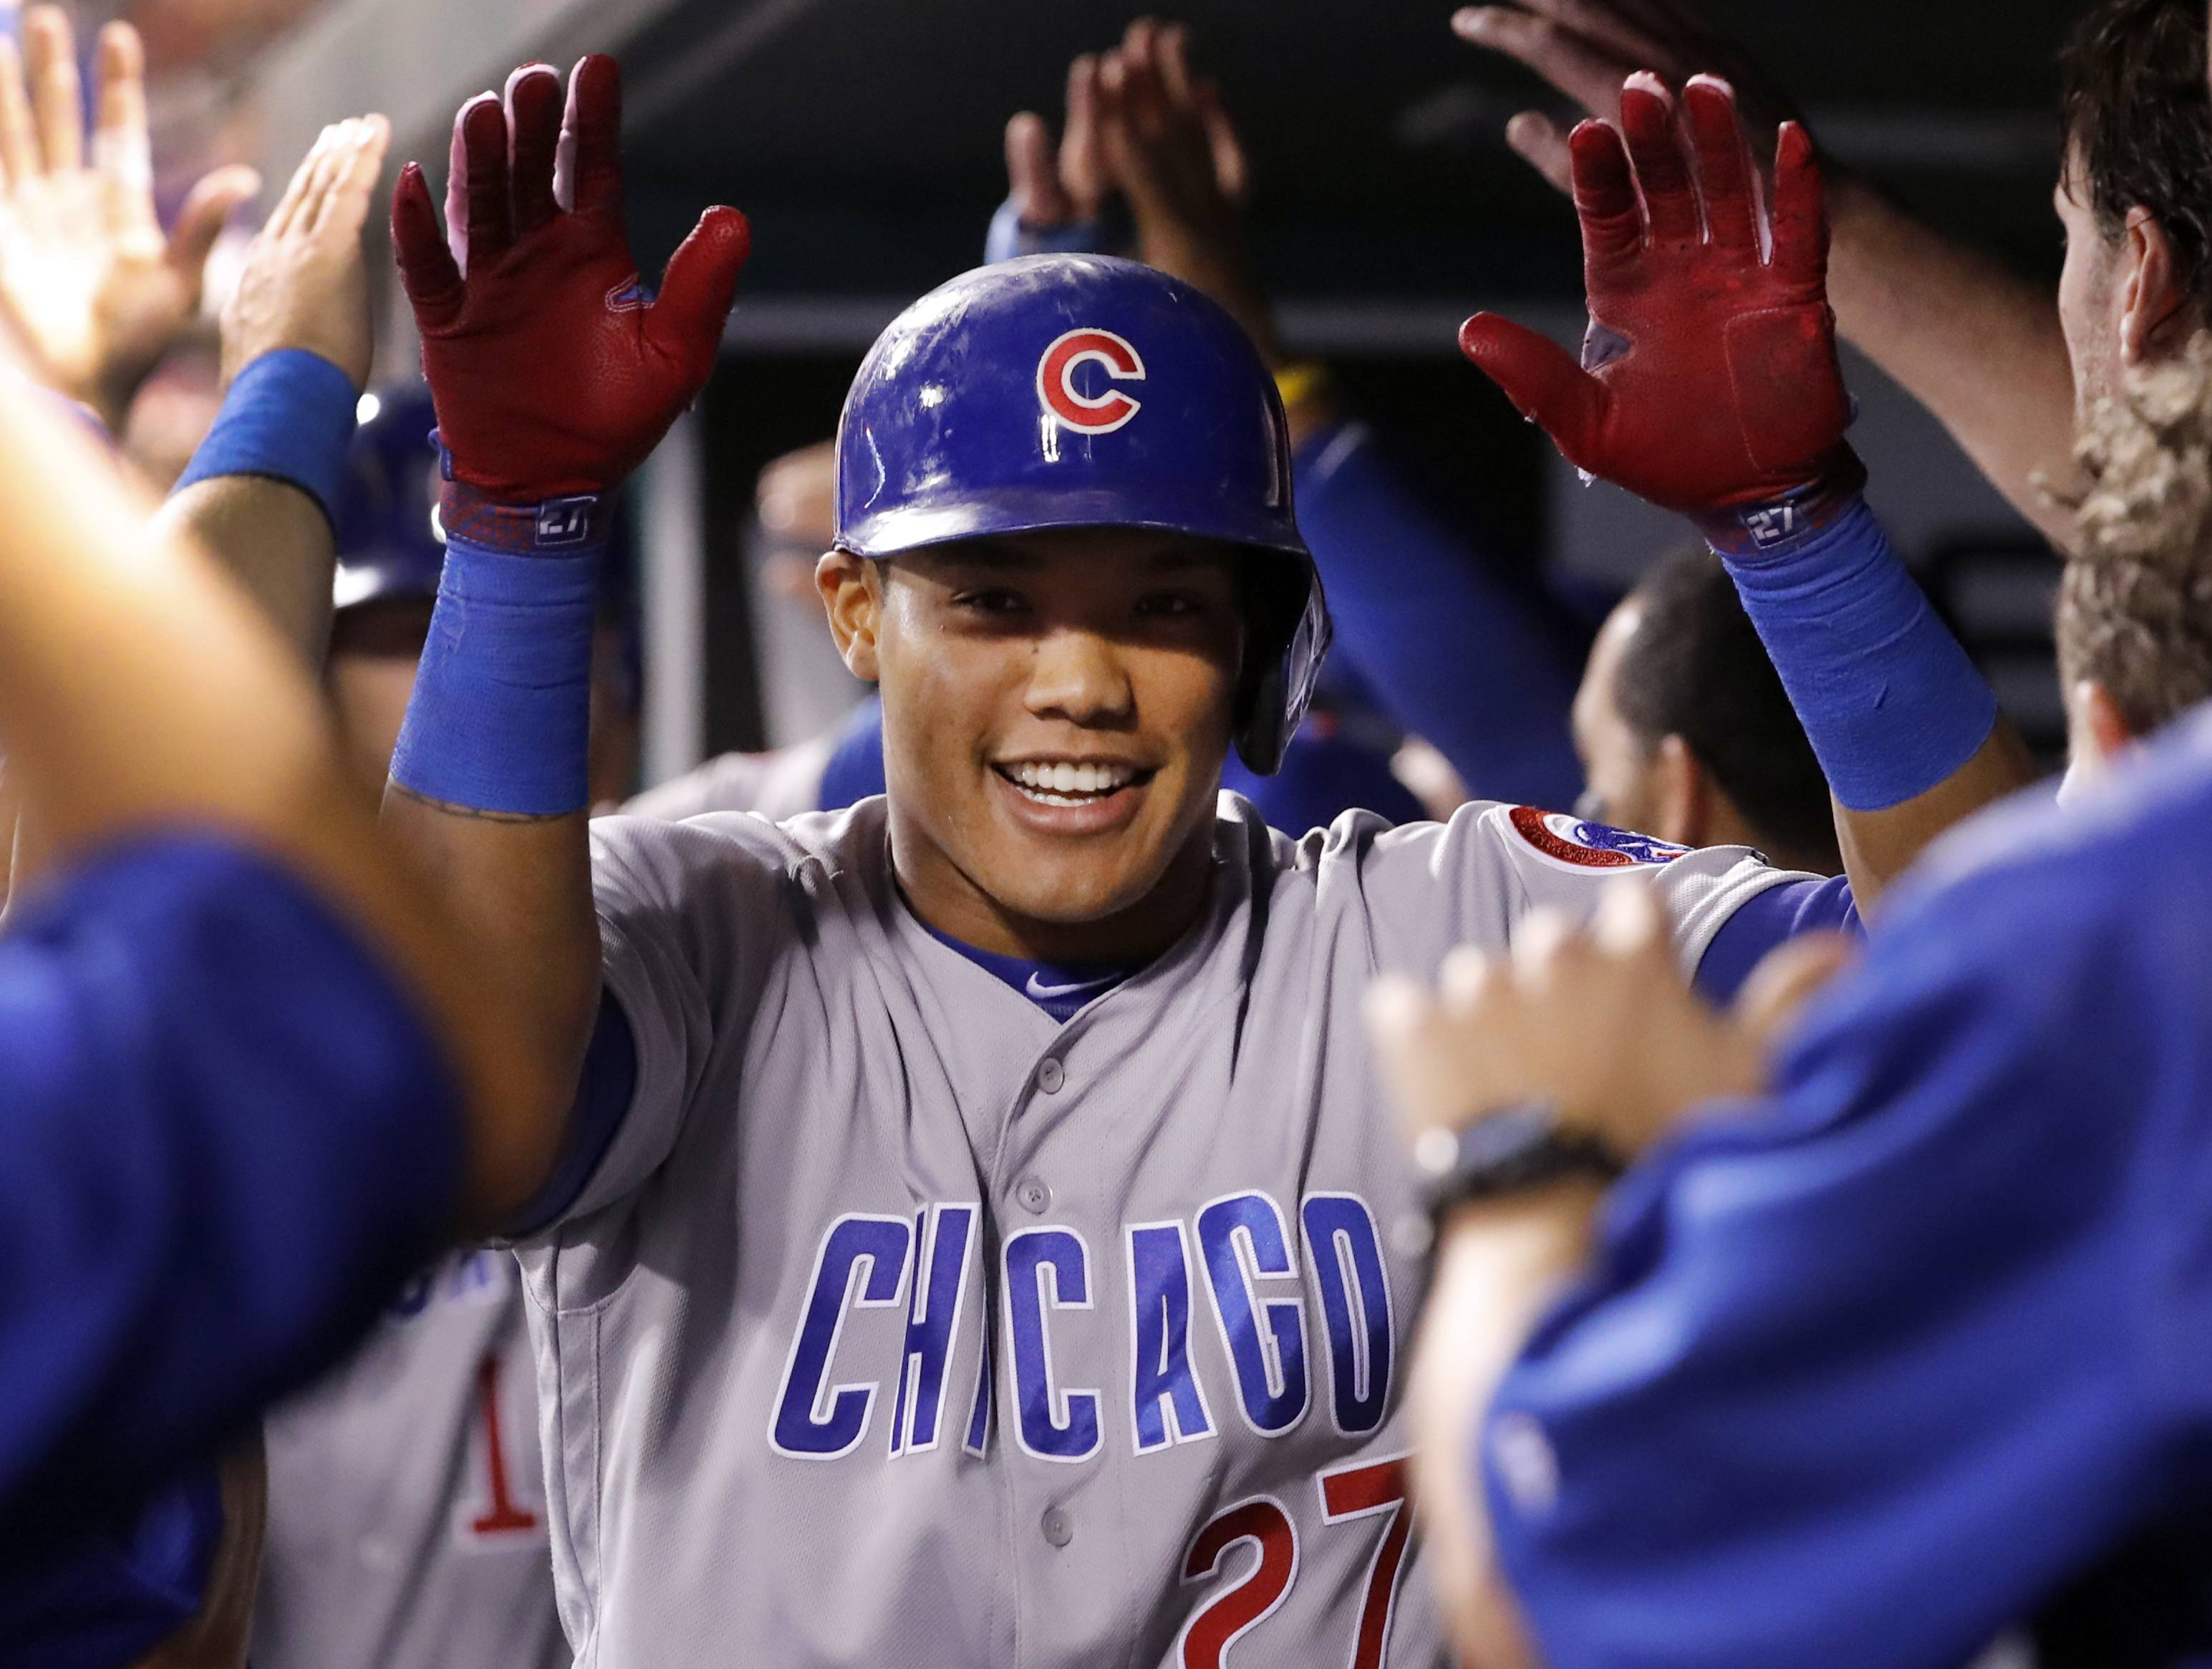 Cubs clinch division with win over Cardinals